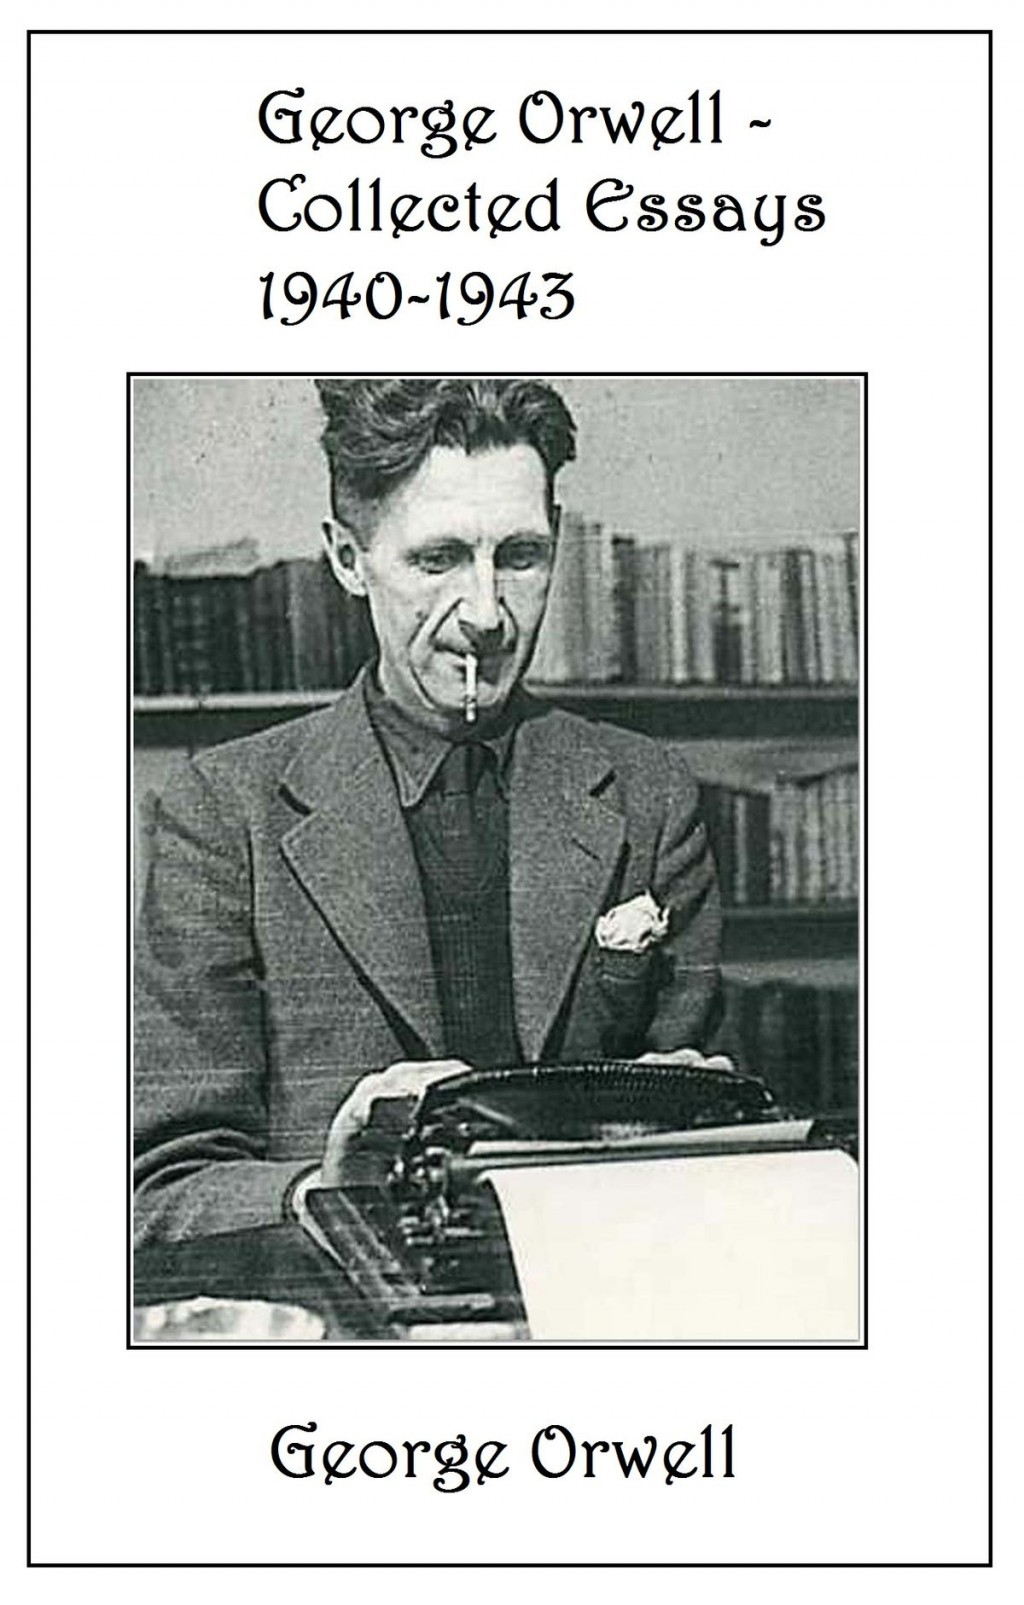 002 George Orwell Collected Essays Essay Frightening 1984 Summary Pdf On Writing Large